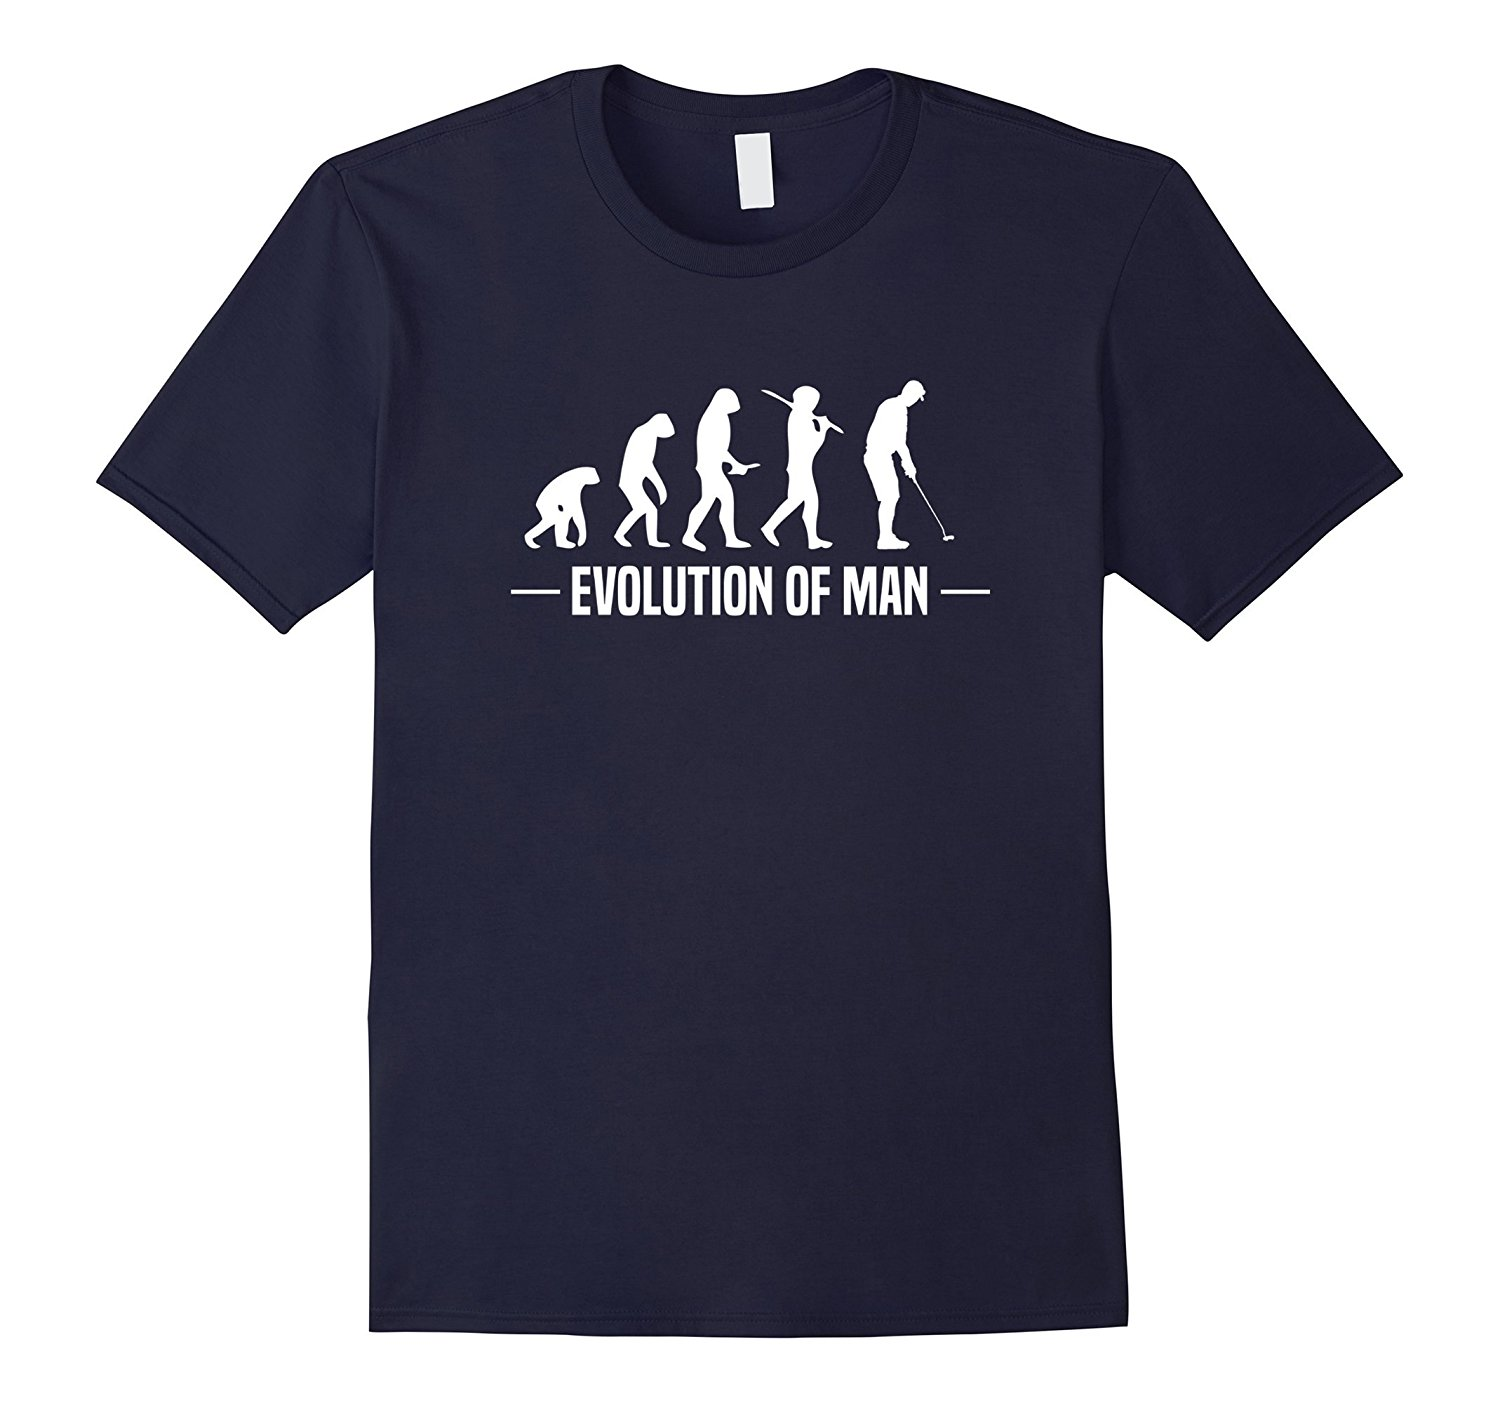 Evolution of Man T-Shirt Funny Golfing Tee 100% Cotton Letter Printed T Shirts Top Tee Harajuku Funny Rick Tee Shirts